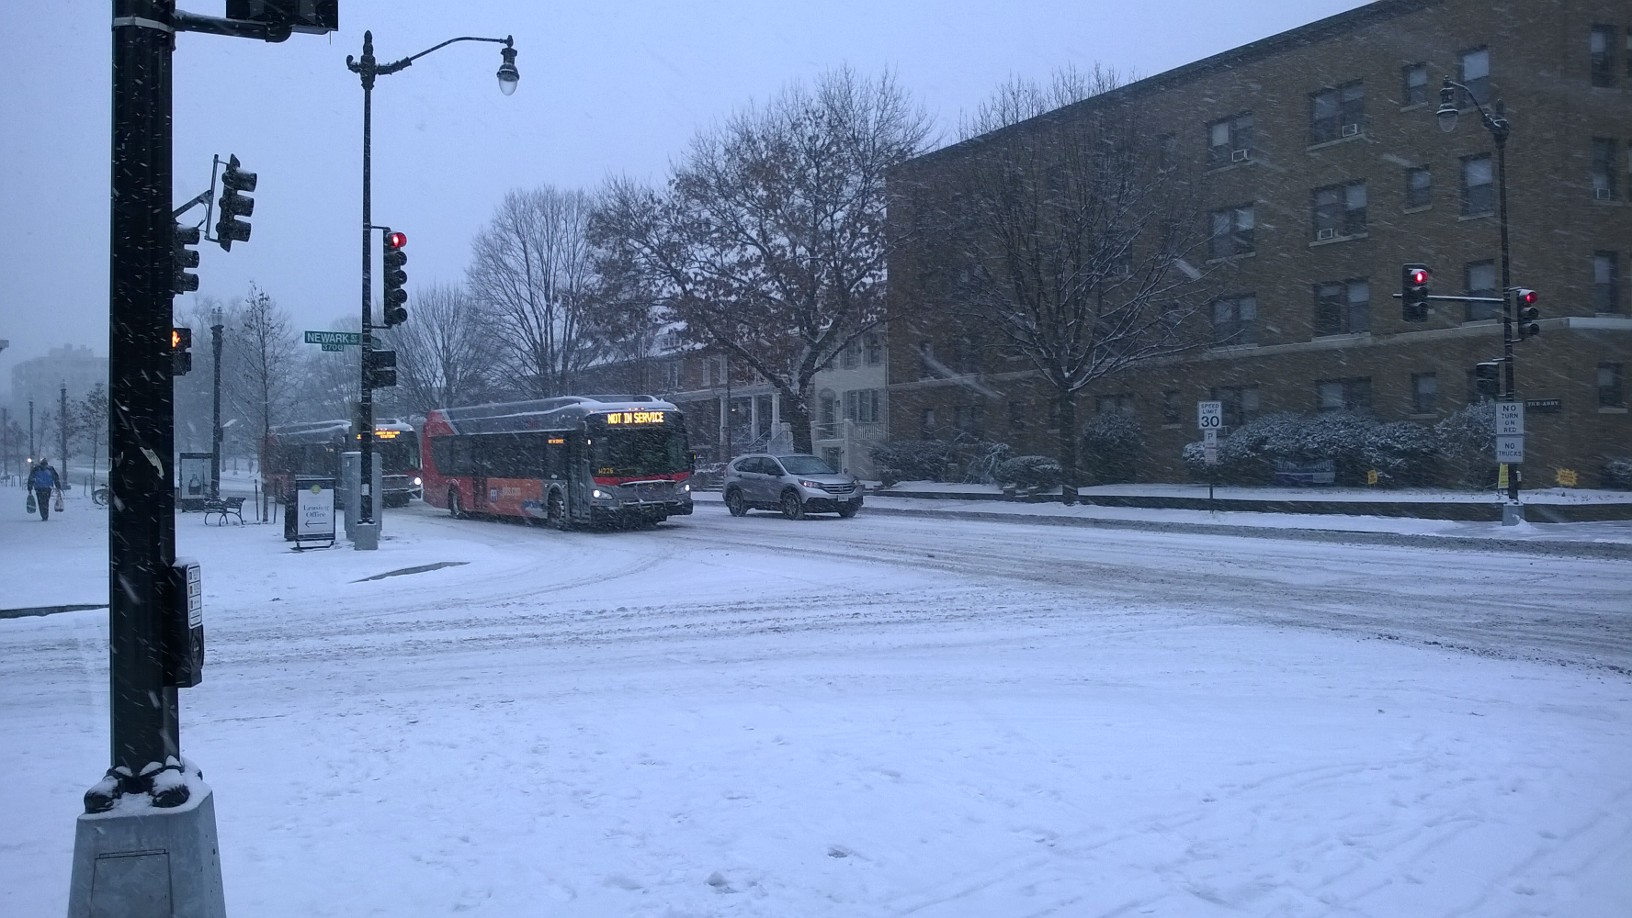 A bus traverses the snow on Wisconsin Ave. in Washington, D.C. on Friday, Jan. 22, 2016. Due to a massive snow storm, public transit will be shut down in the District Friday evening and through the weekend. (WTOP Staff)